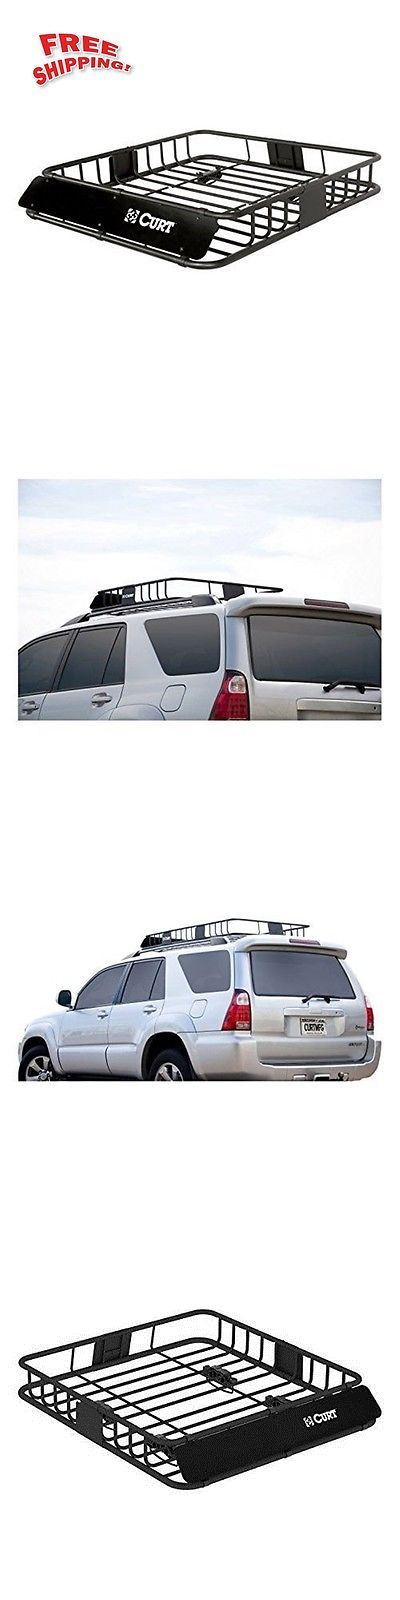 17 Best Ideas About Van Roof Racks On Pinterest Van